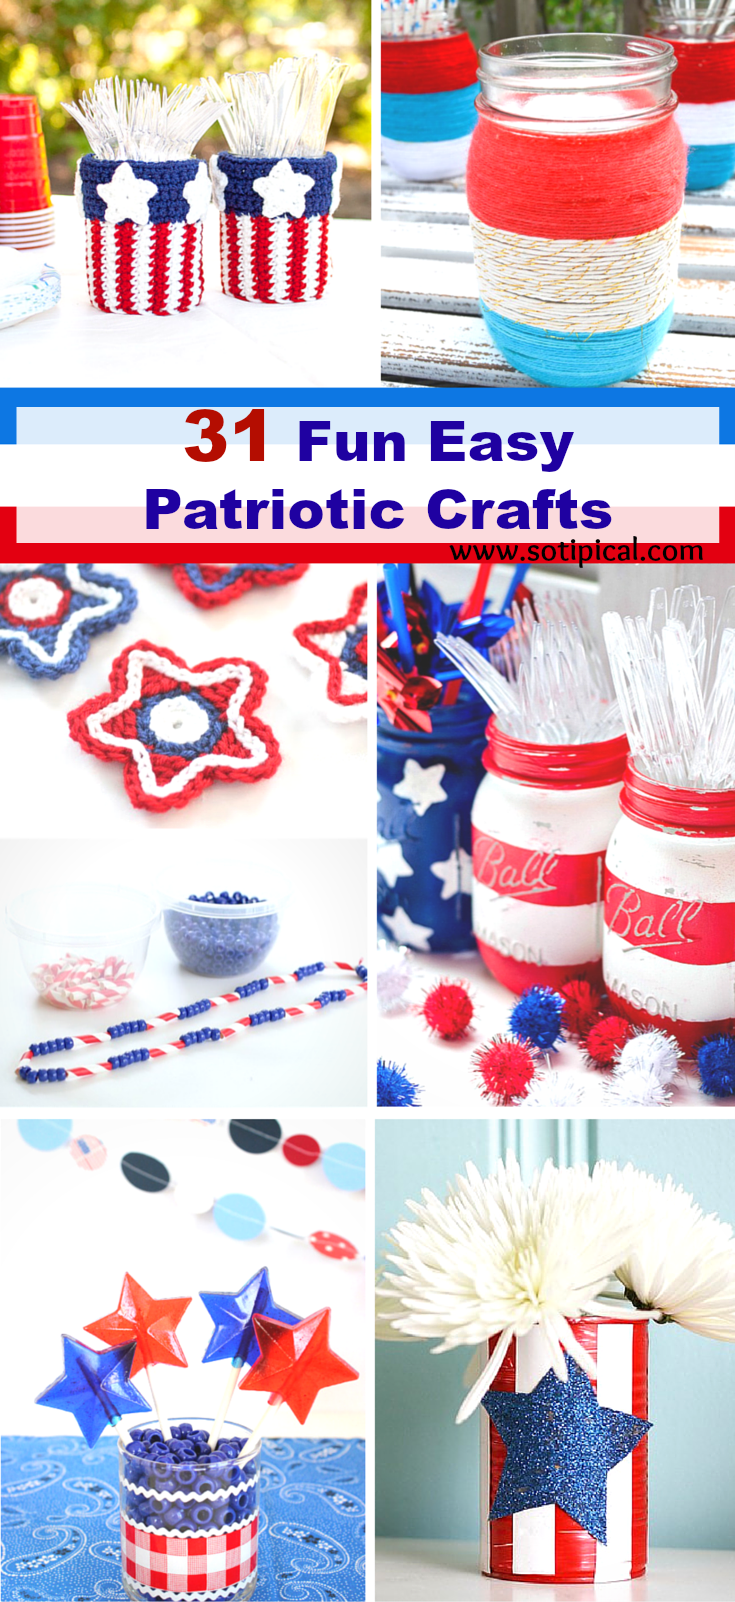 31 fun easy patriotic crafts for Americana crafts to make